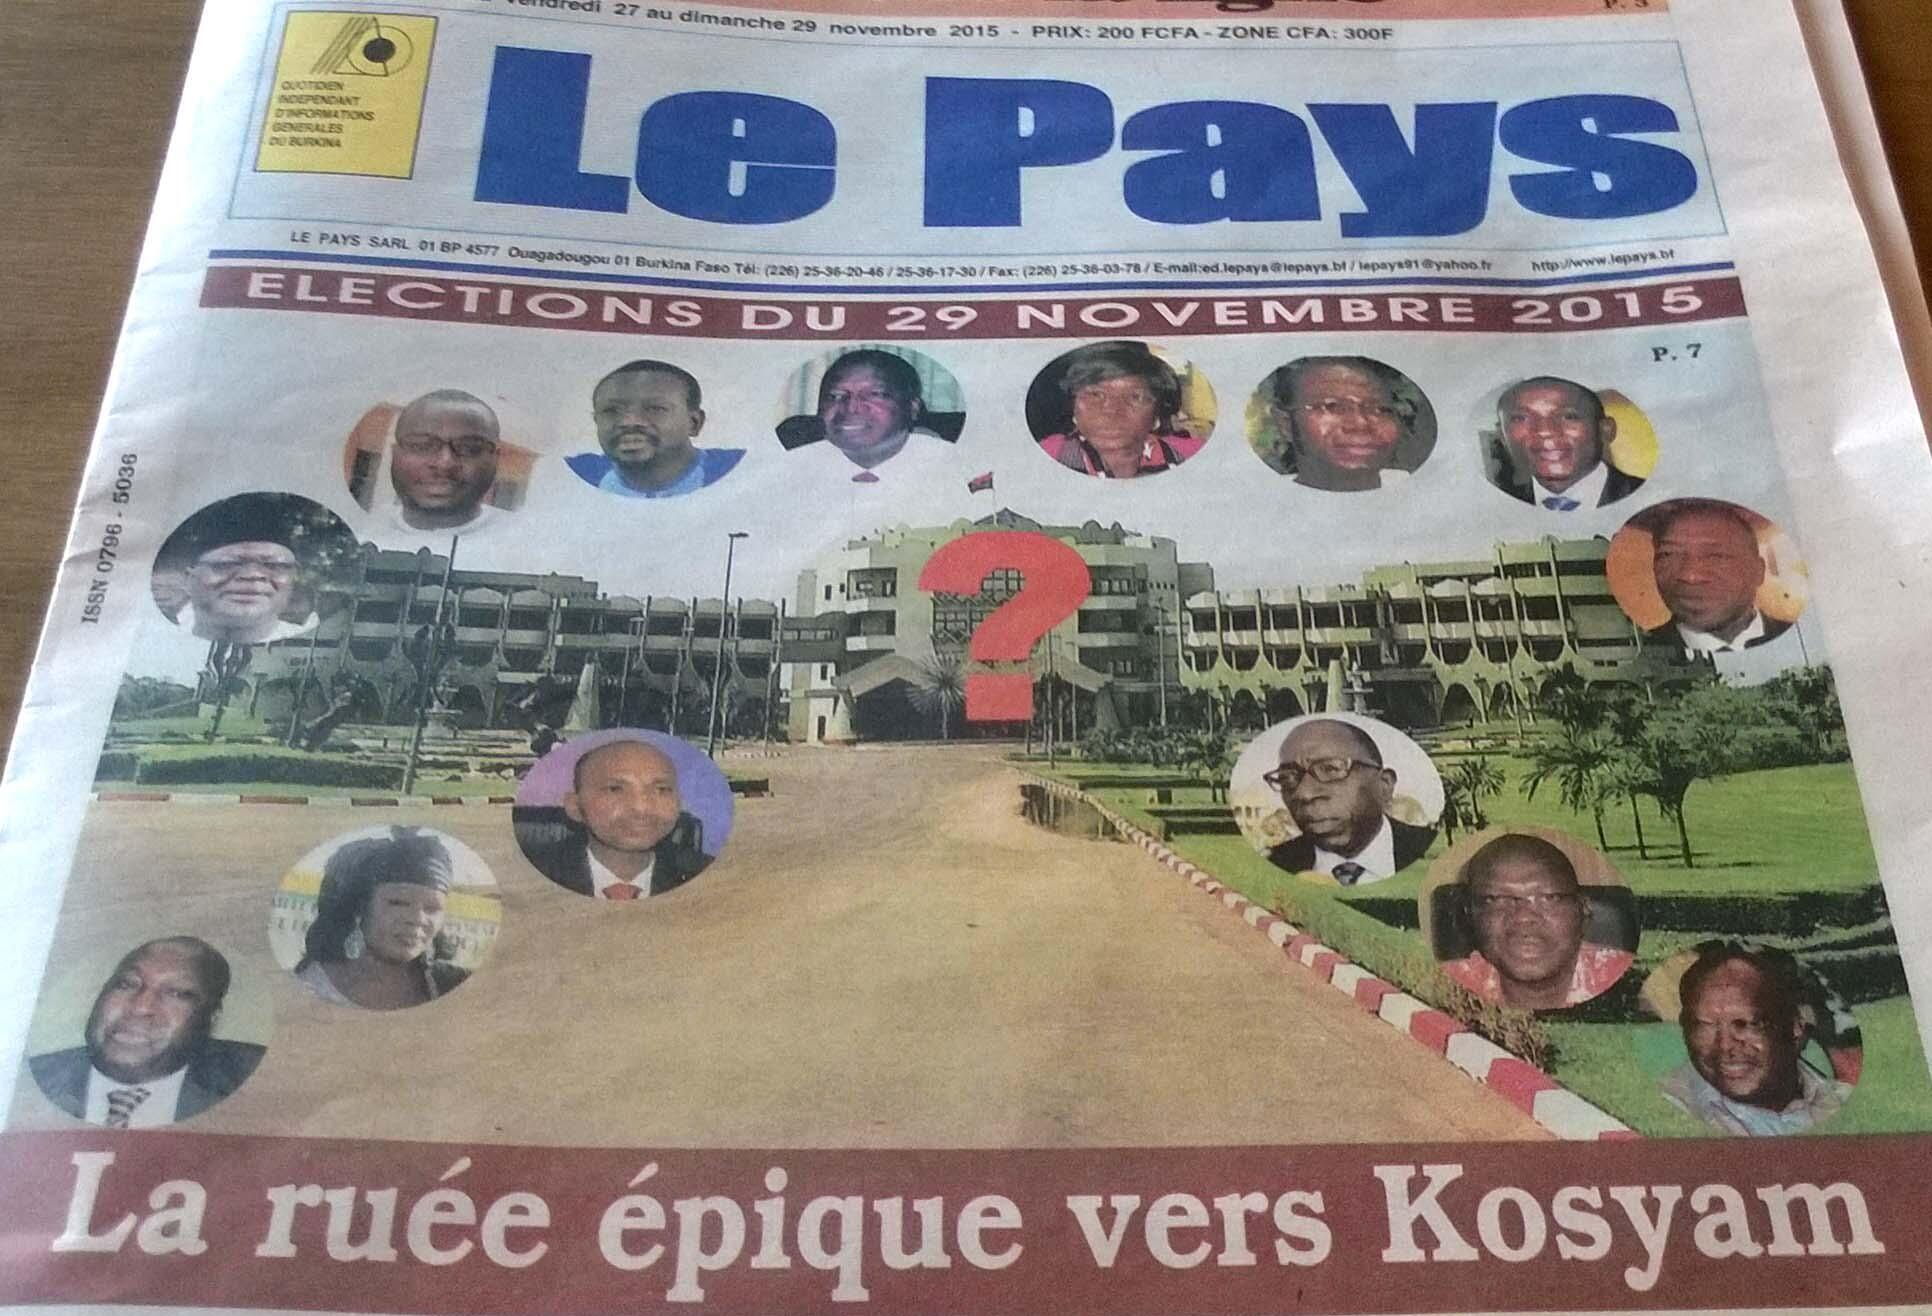 The epic rush to Kosyam (seat of the presidency), front page of the Le Pays newspaper, 27 November 2015